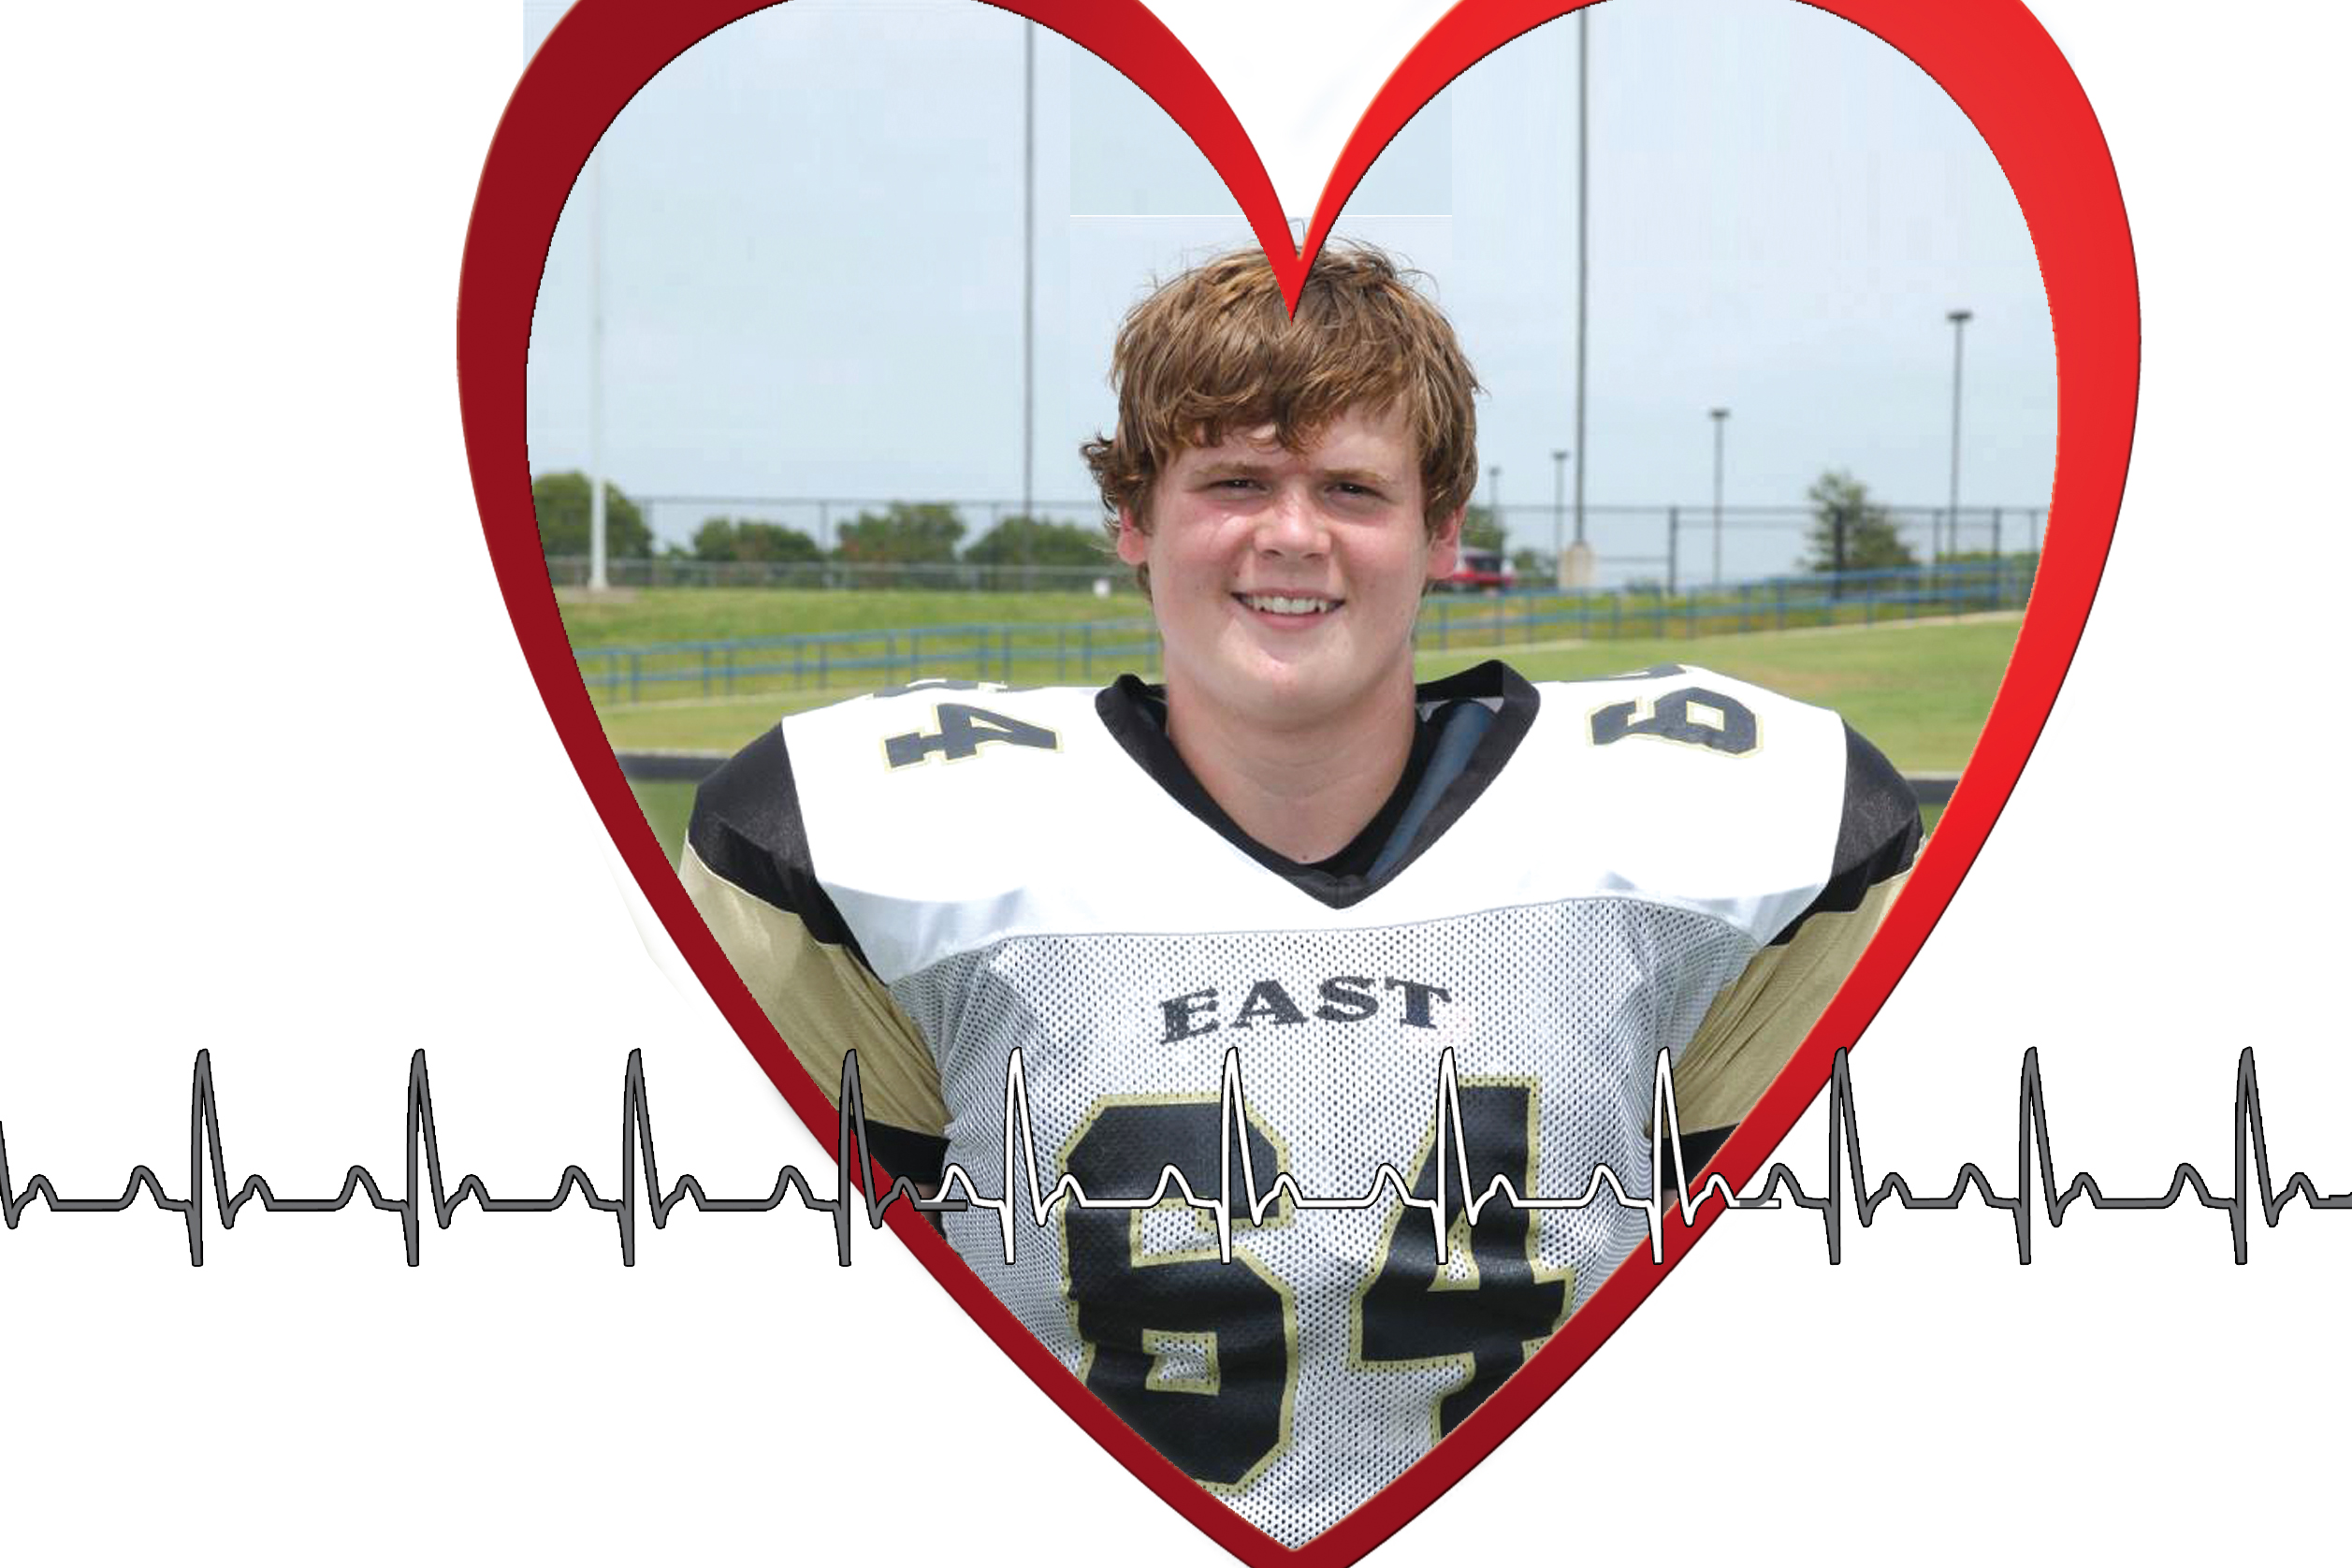 Living for Zachary: Bringing awareness, prevention to sudden cardiac arrest in youth